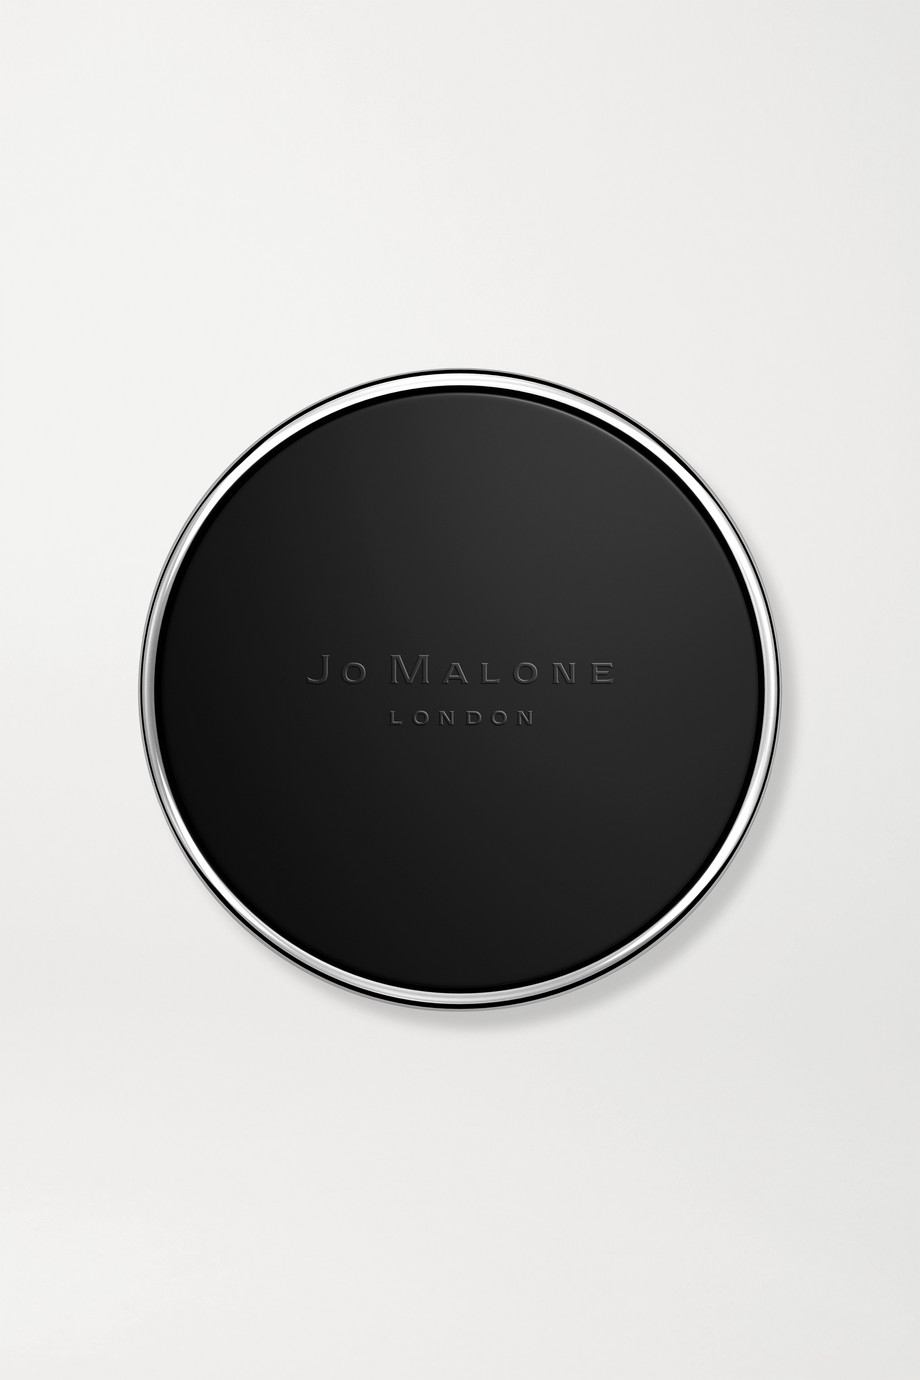 Jo Malone London Scent To Go - Pomegranate Noir